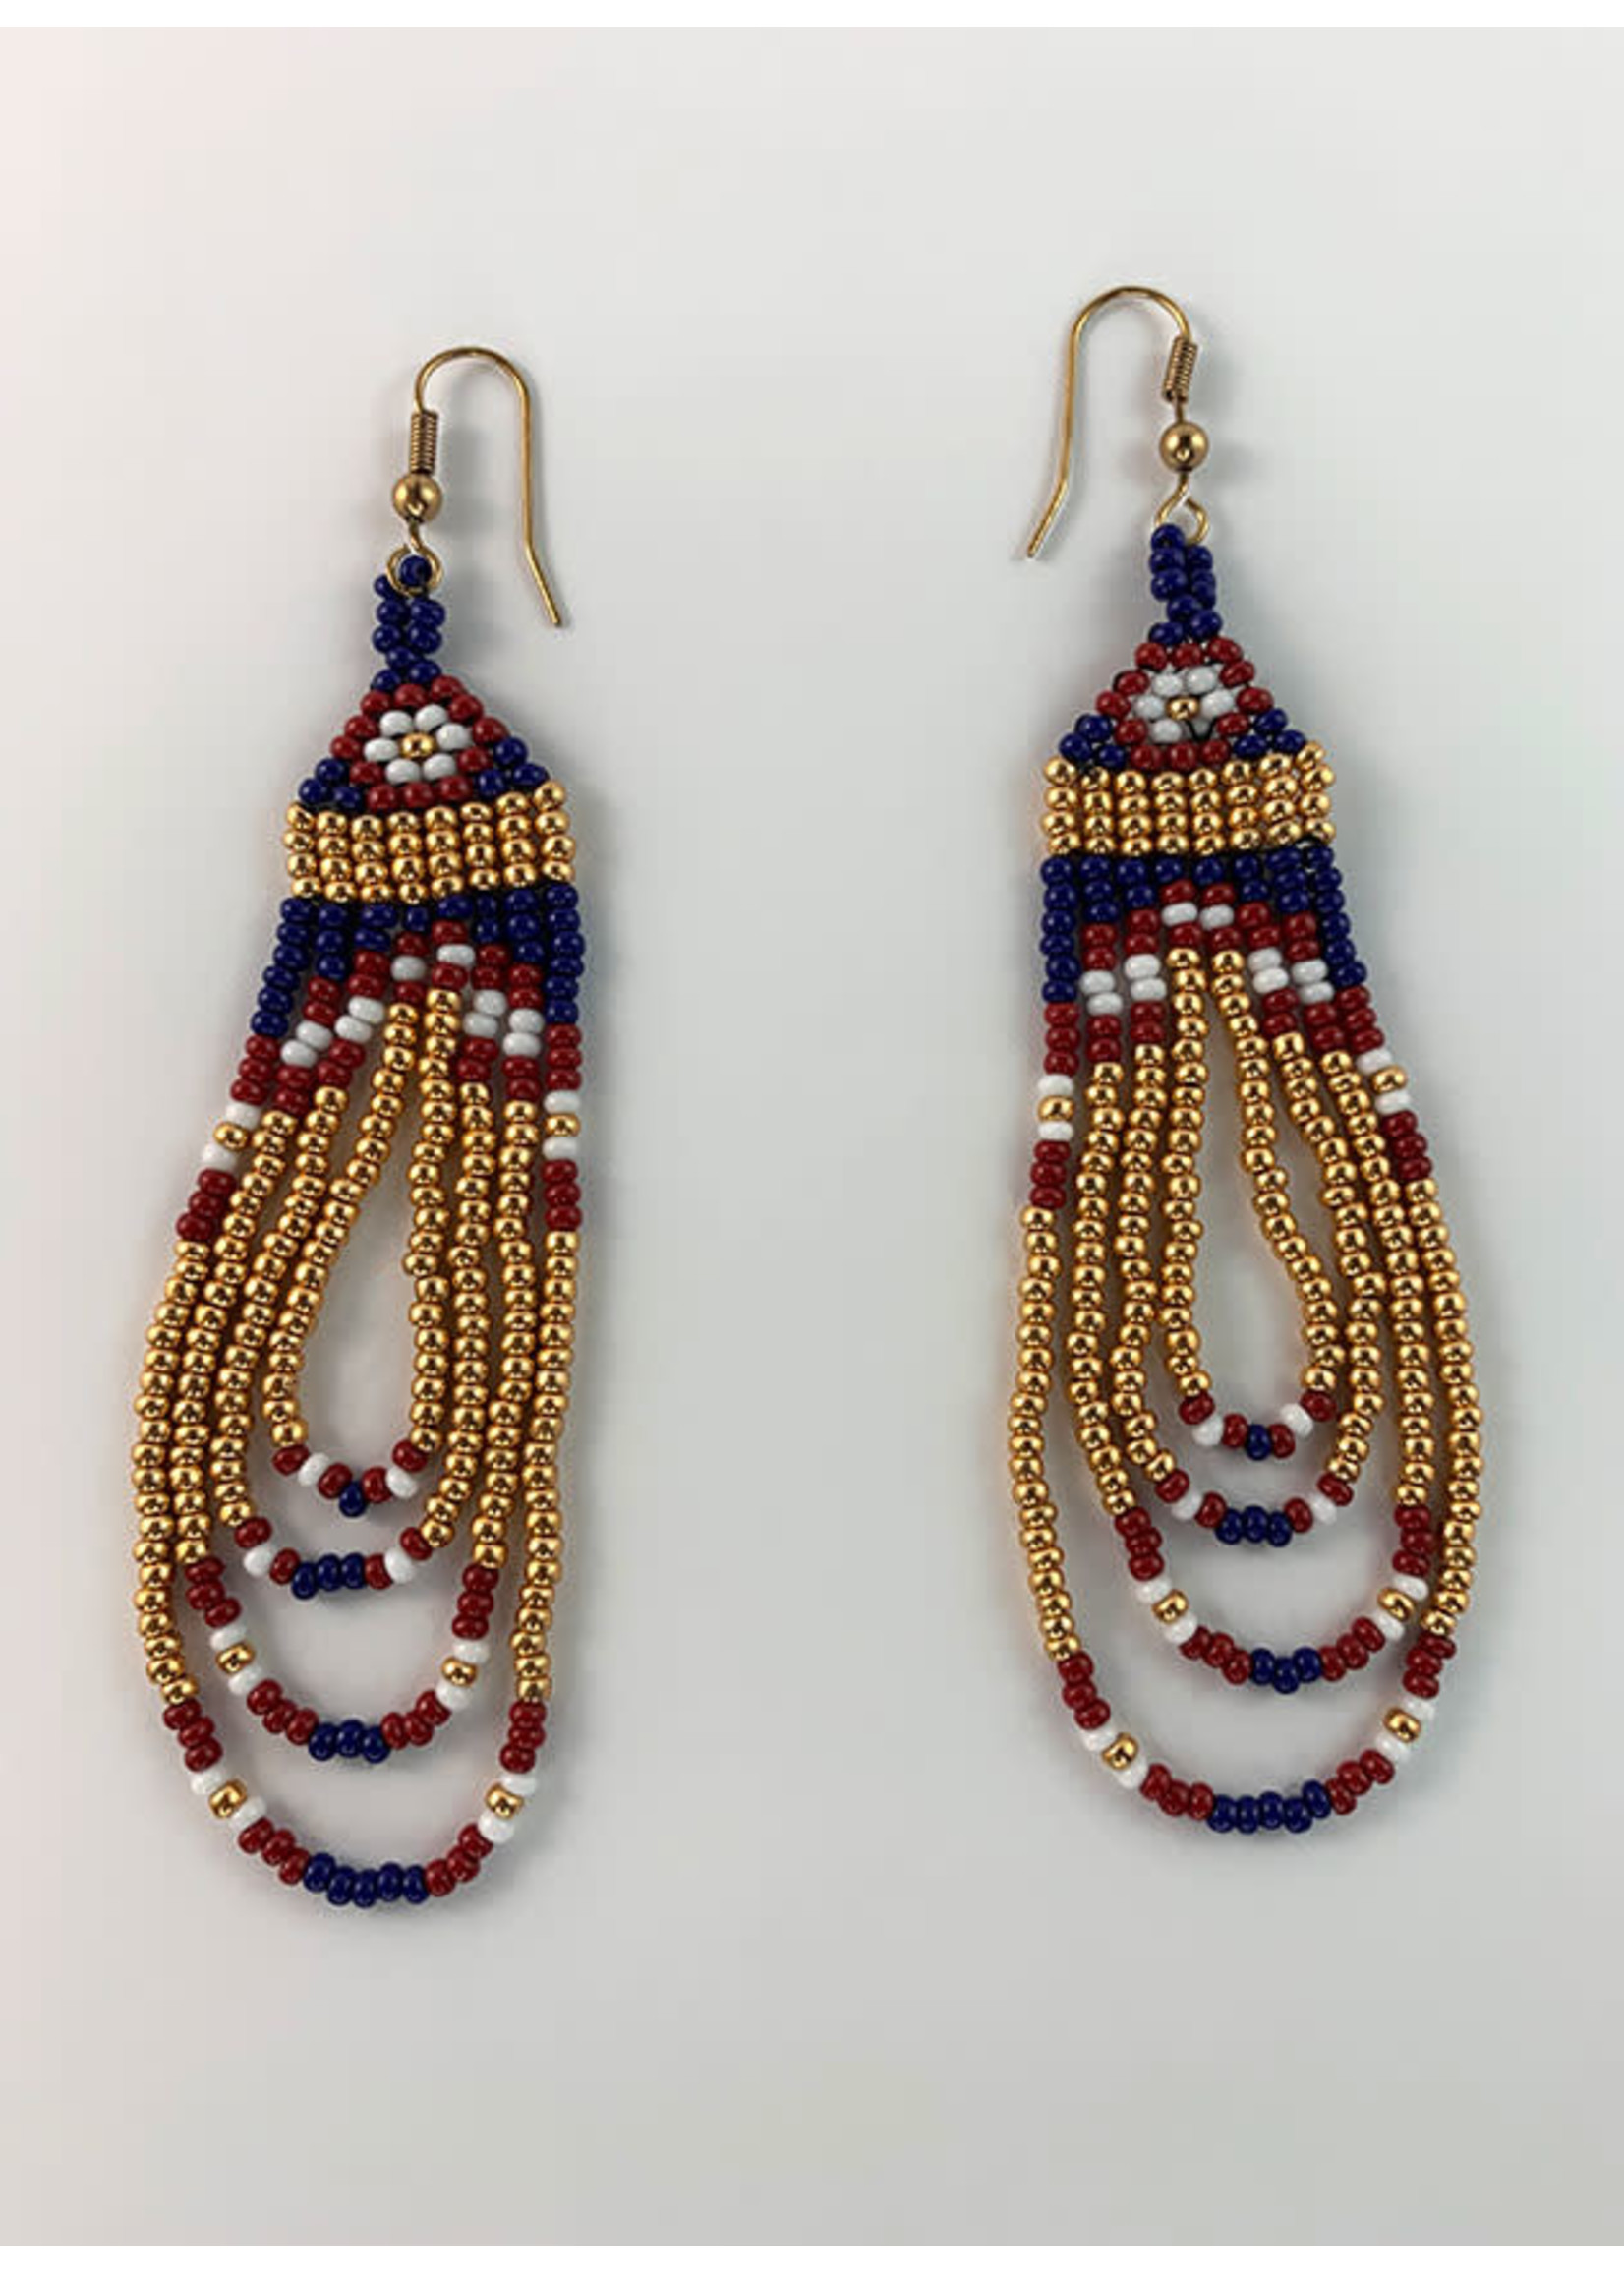 Circle of Eagles Beaded Earrings - Gold, Red, White, Blue (SOLD)